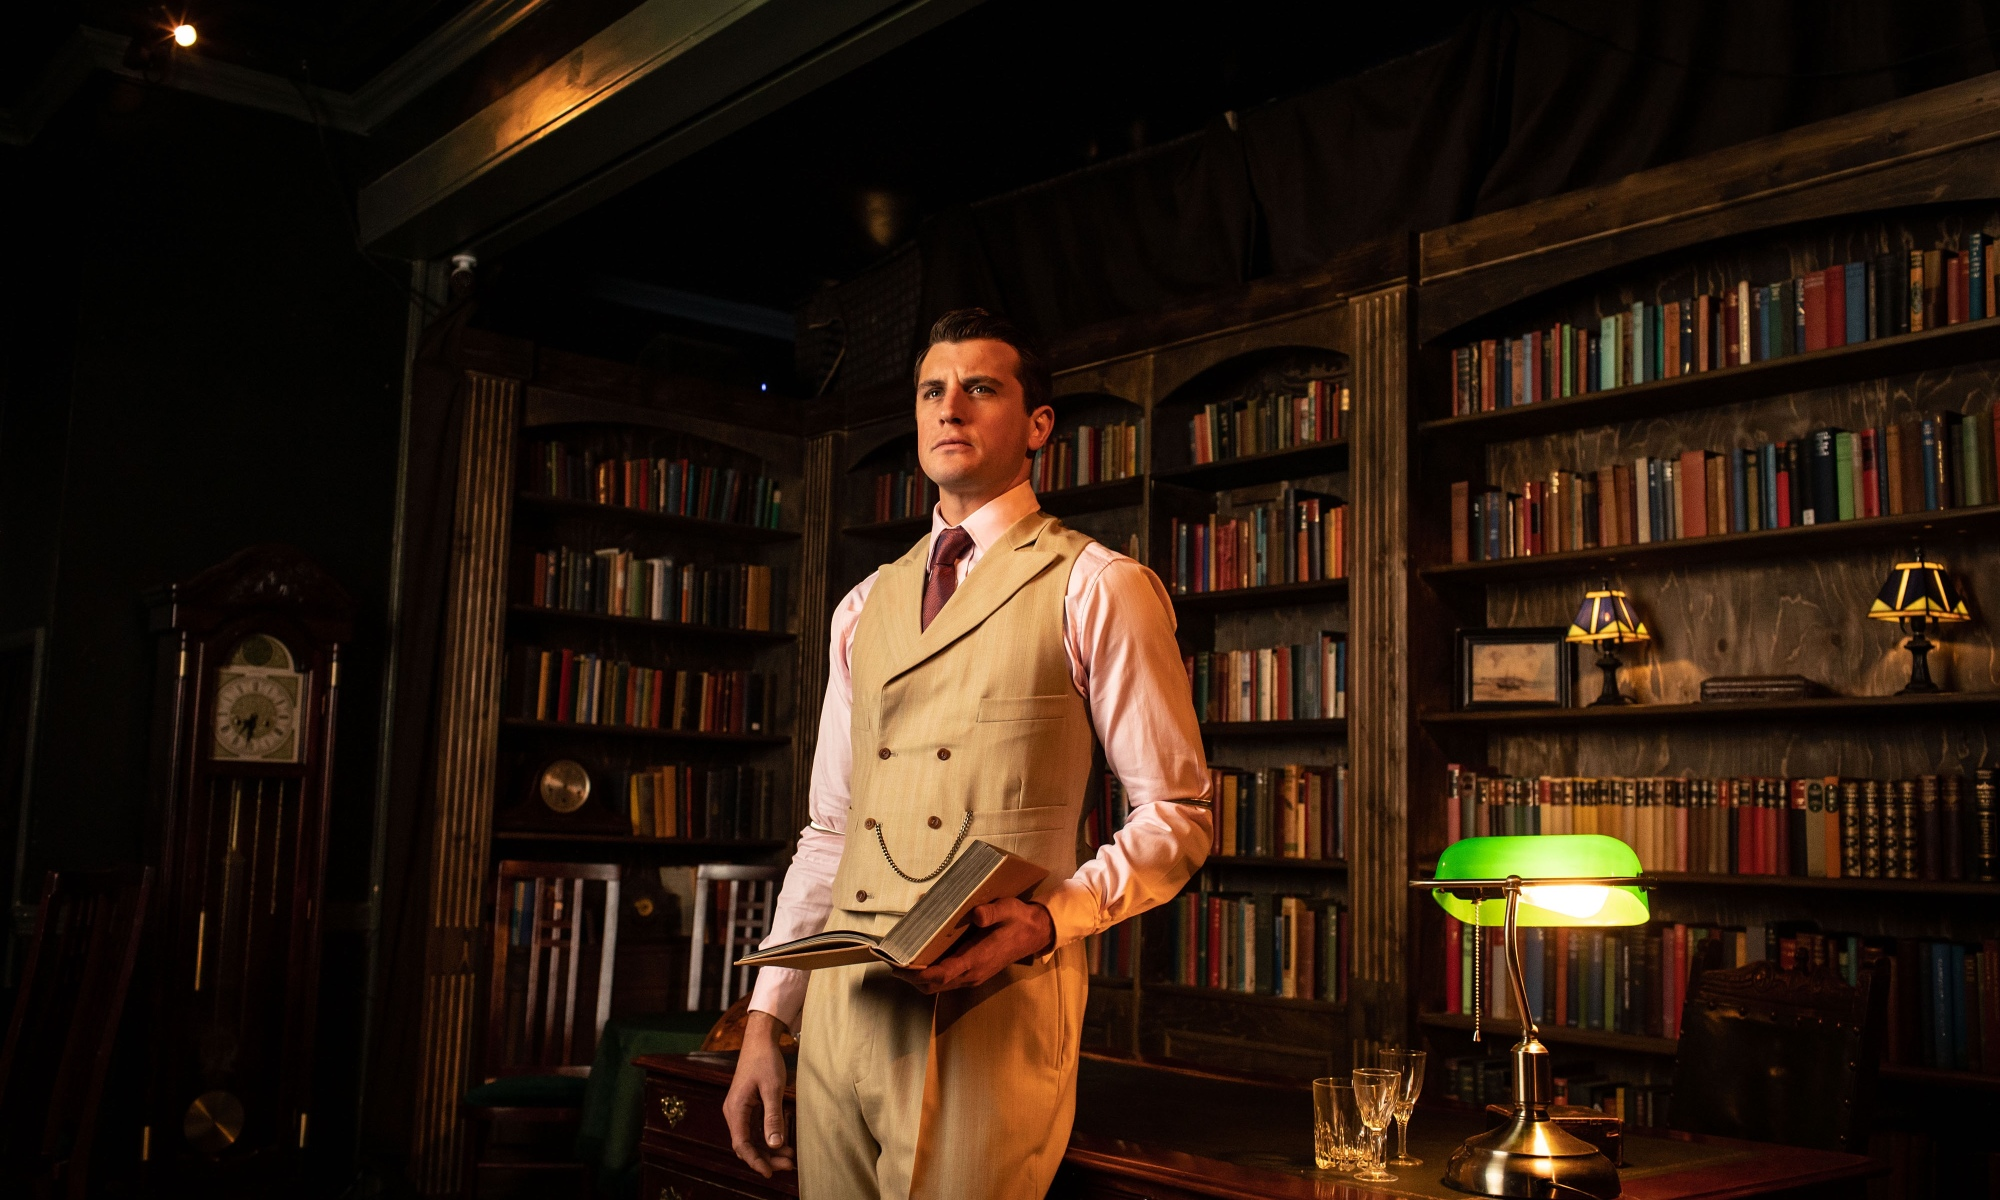 A man in a cream waistcoat holds an open book in his left hand. He is in an office, with several bookshelves behind him.